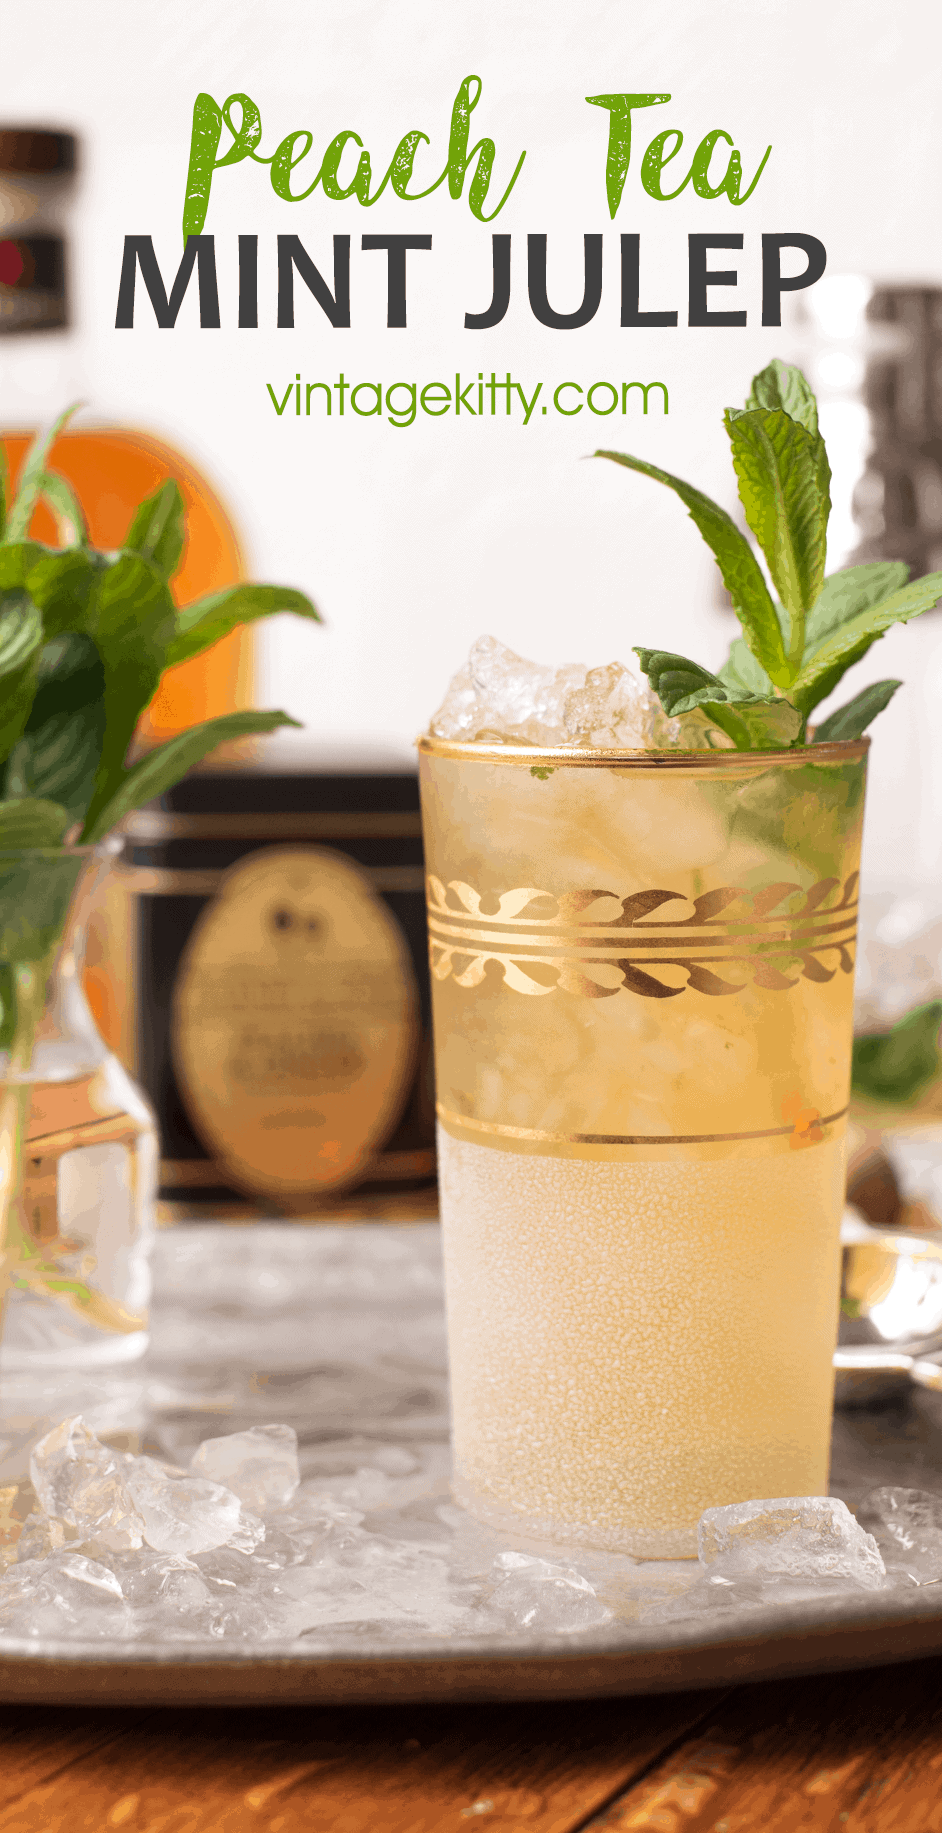 Mint Julep Pin 2 - Peach Tea Mint Julep